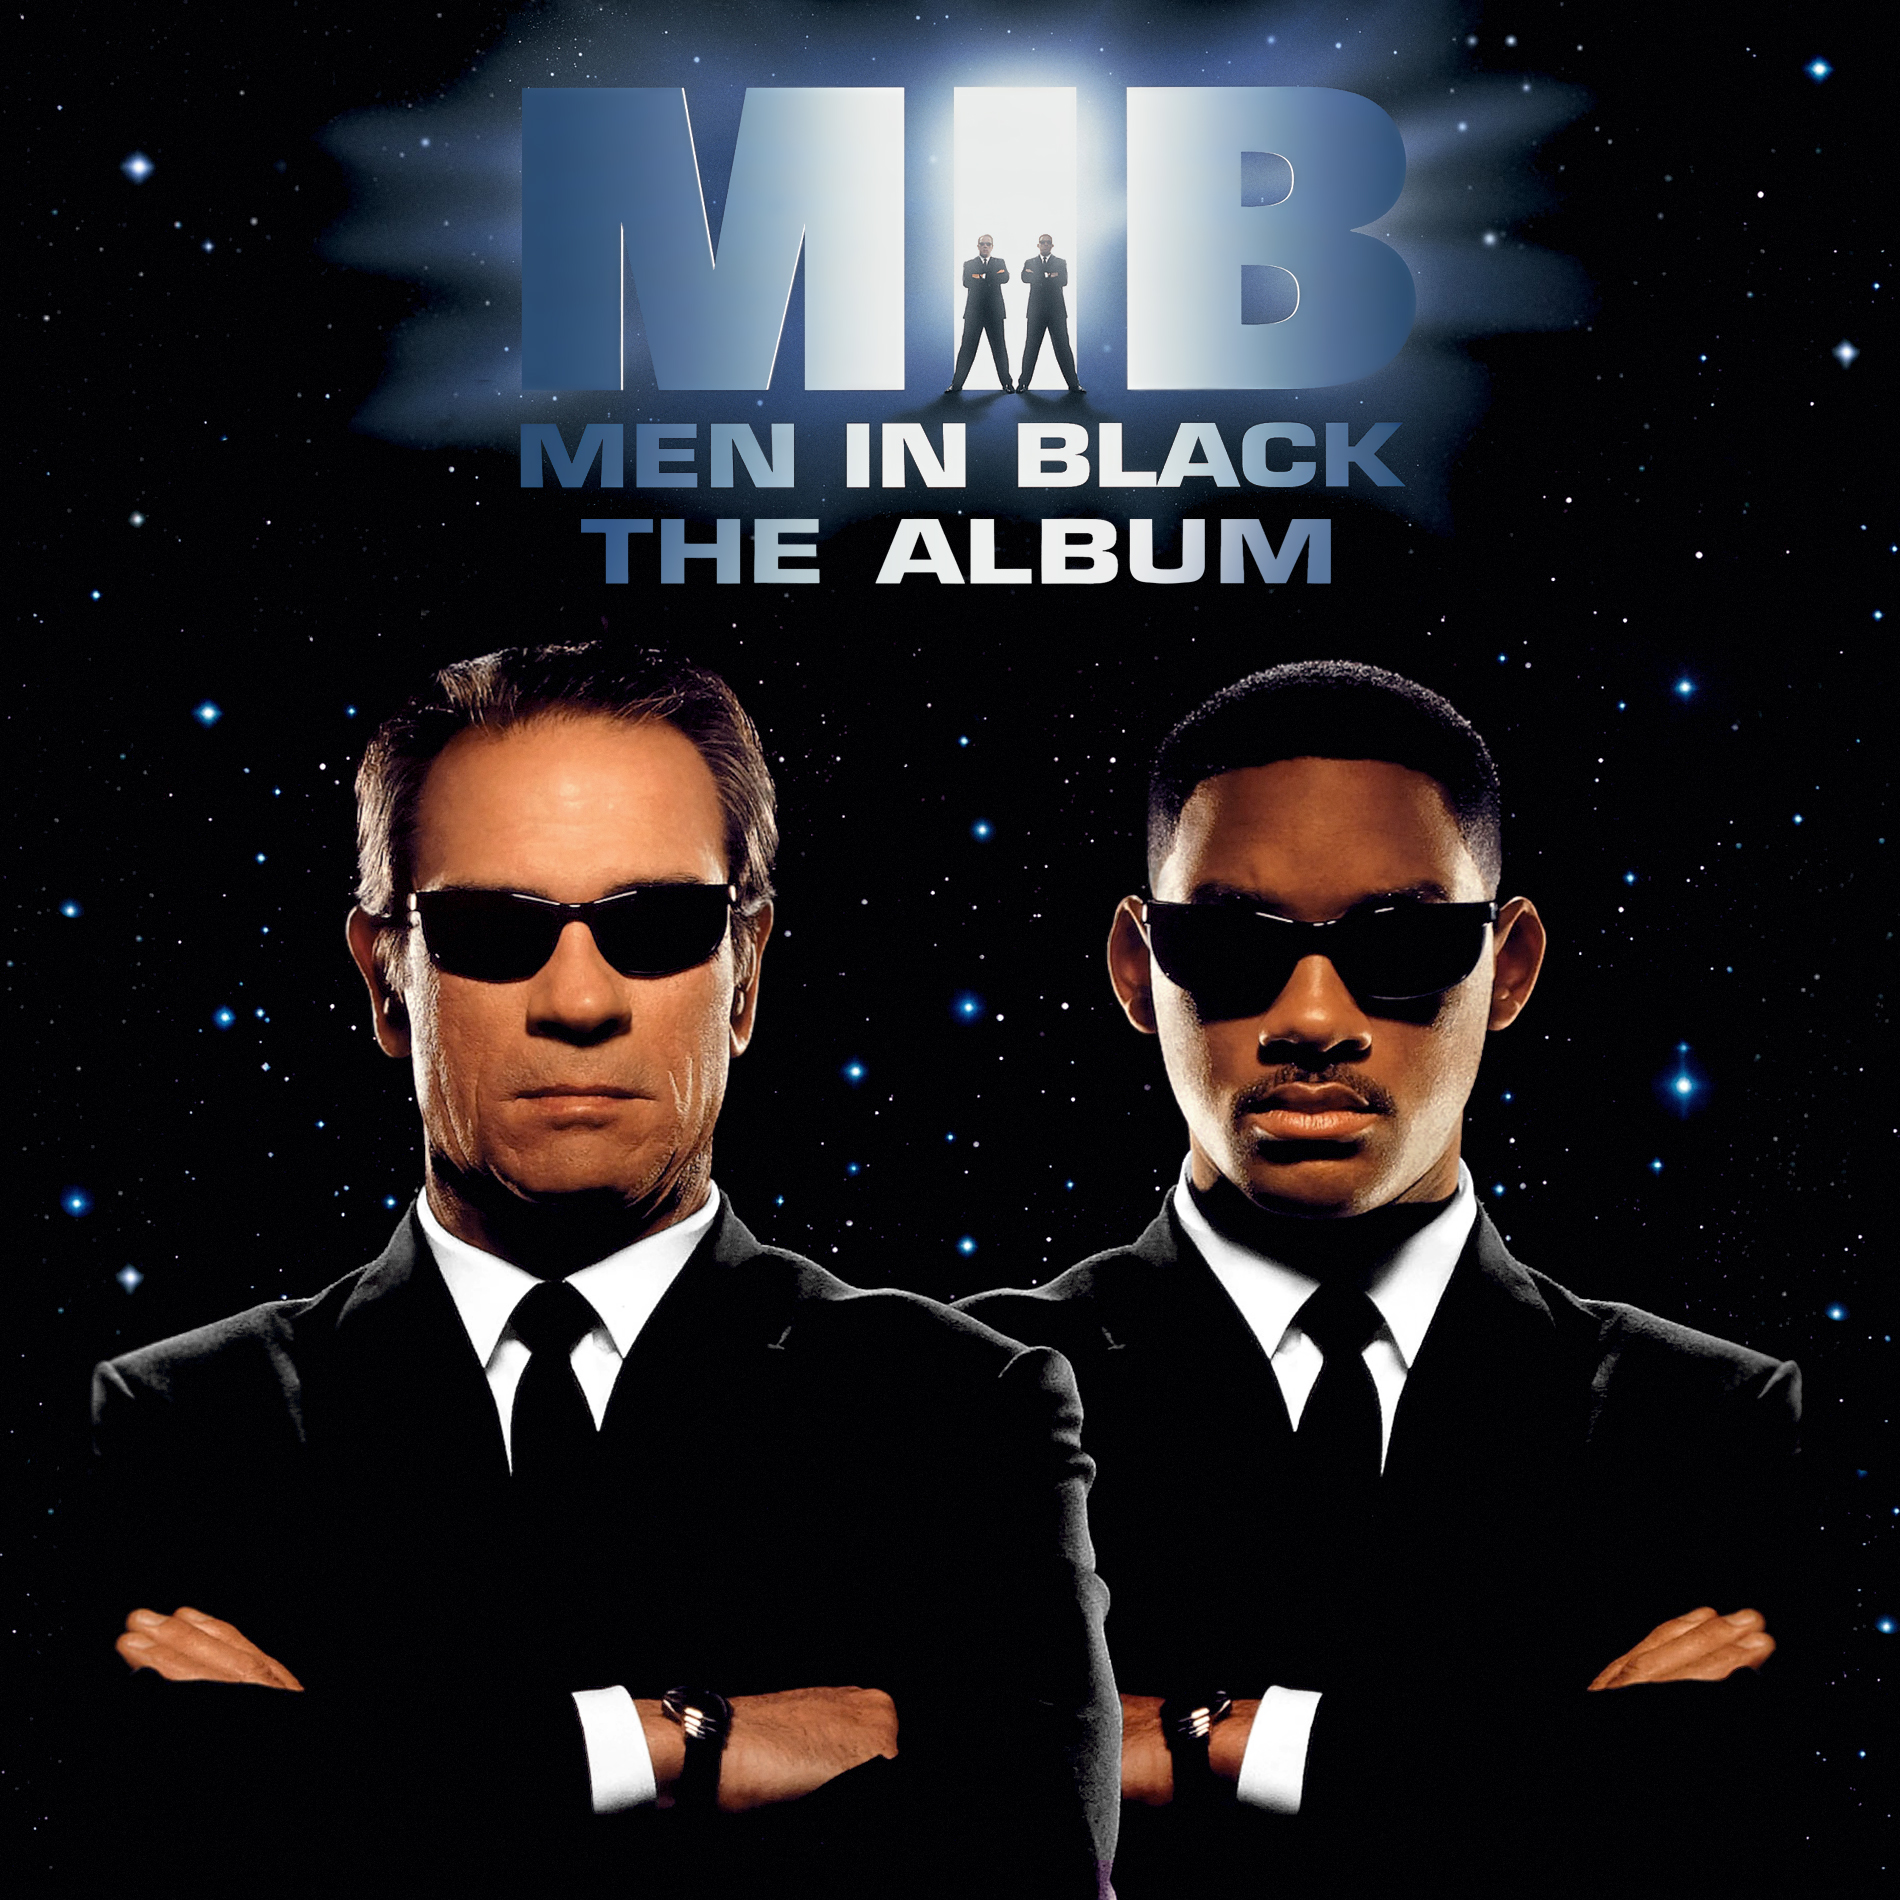 Album Artist: Various Artists including Will Smith / Album Title: Men in Black – The Album (Soundtrack)